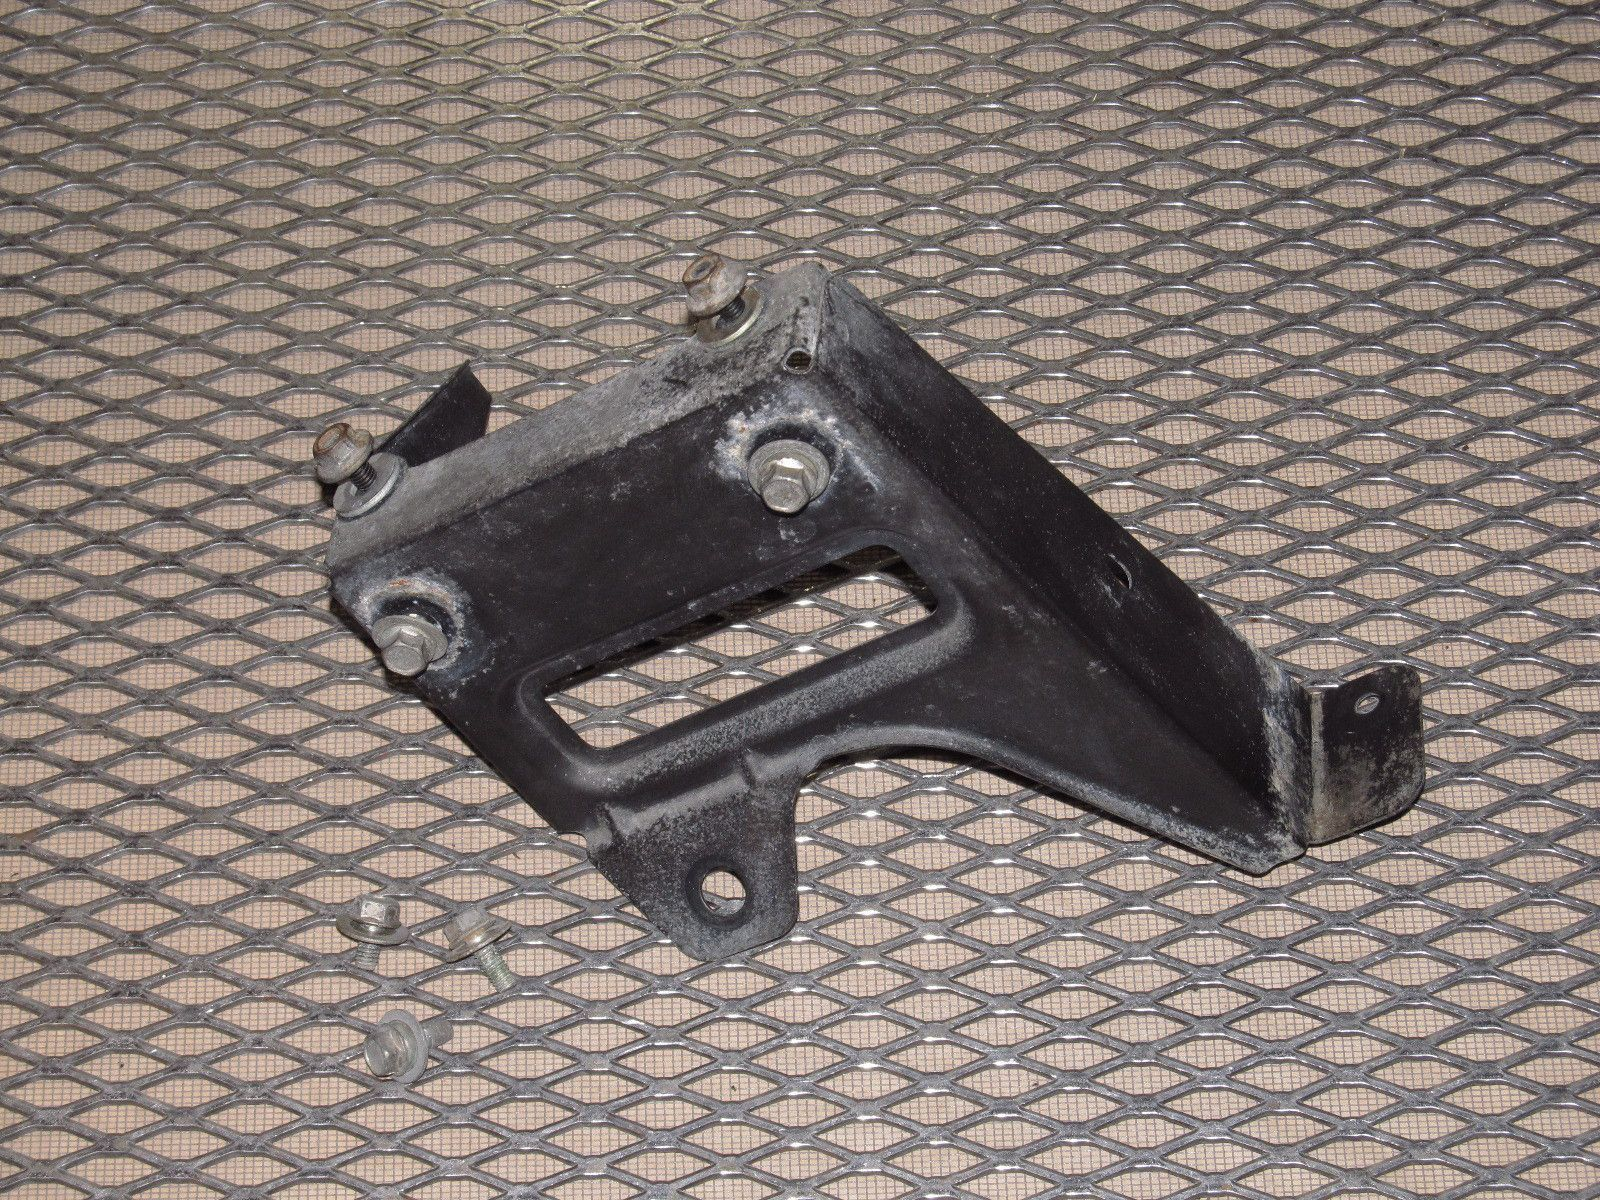 90 91 92 93 Mazda Miata OEM Engine Fuse Box Mounting Bracket